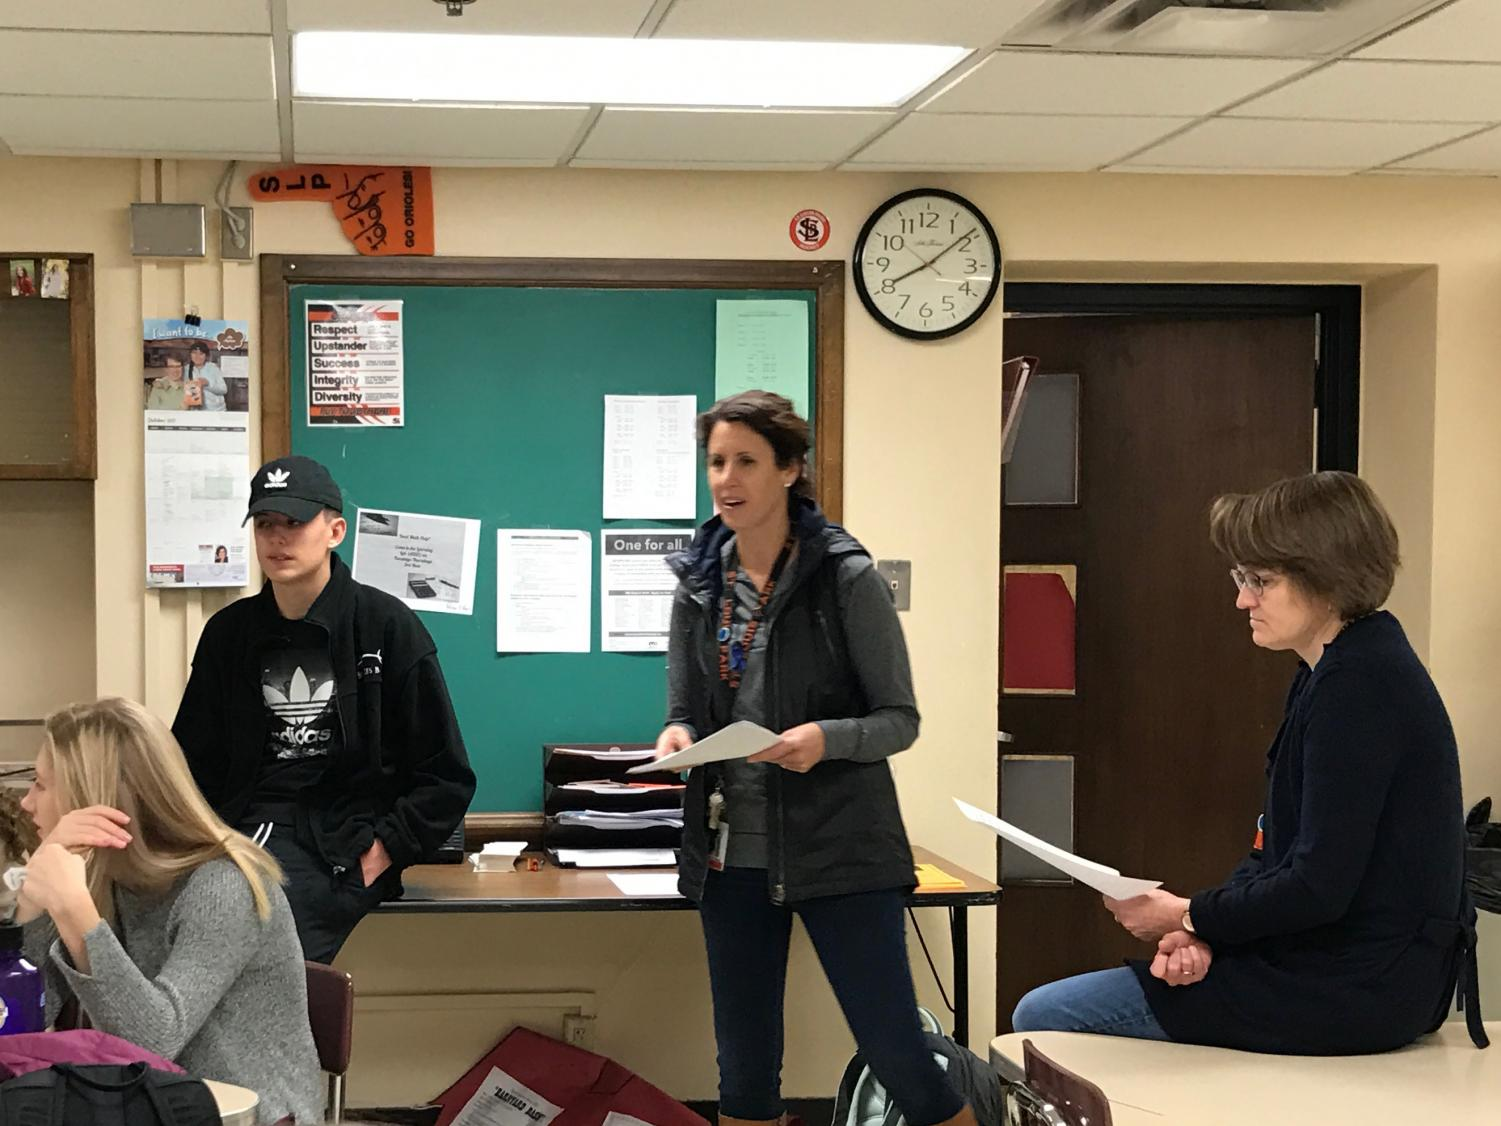 DECA co-advisers Sally Adams and Sophia Ross and senior officer Lewis Brown address DECA members attending the Fall Leadership Conference Oct. 27. The conference allows DECA chapters to bond within their chapters and with other Minnesota chapters.